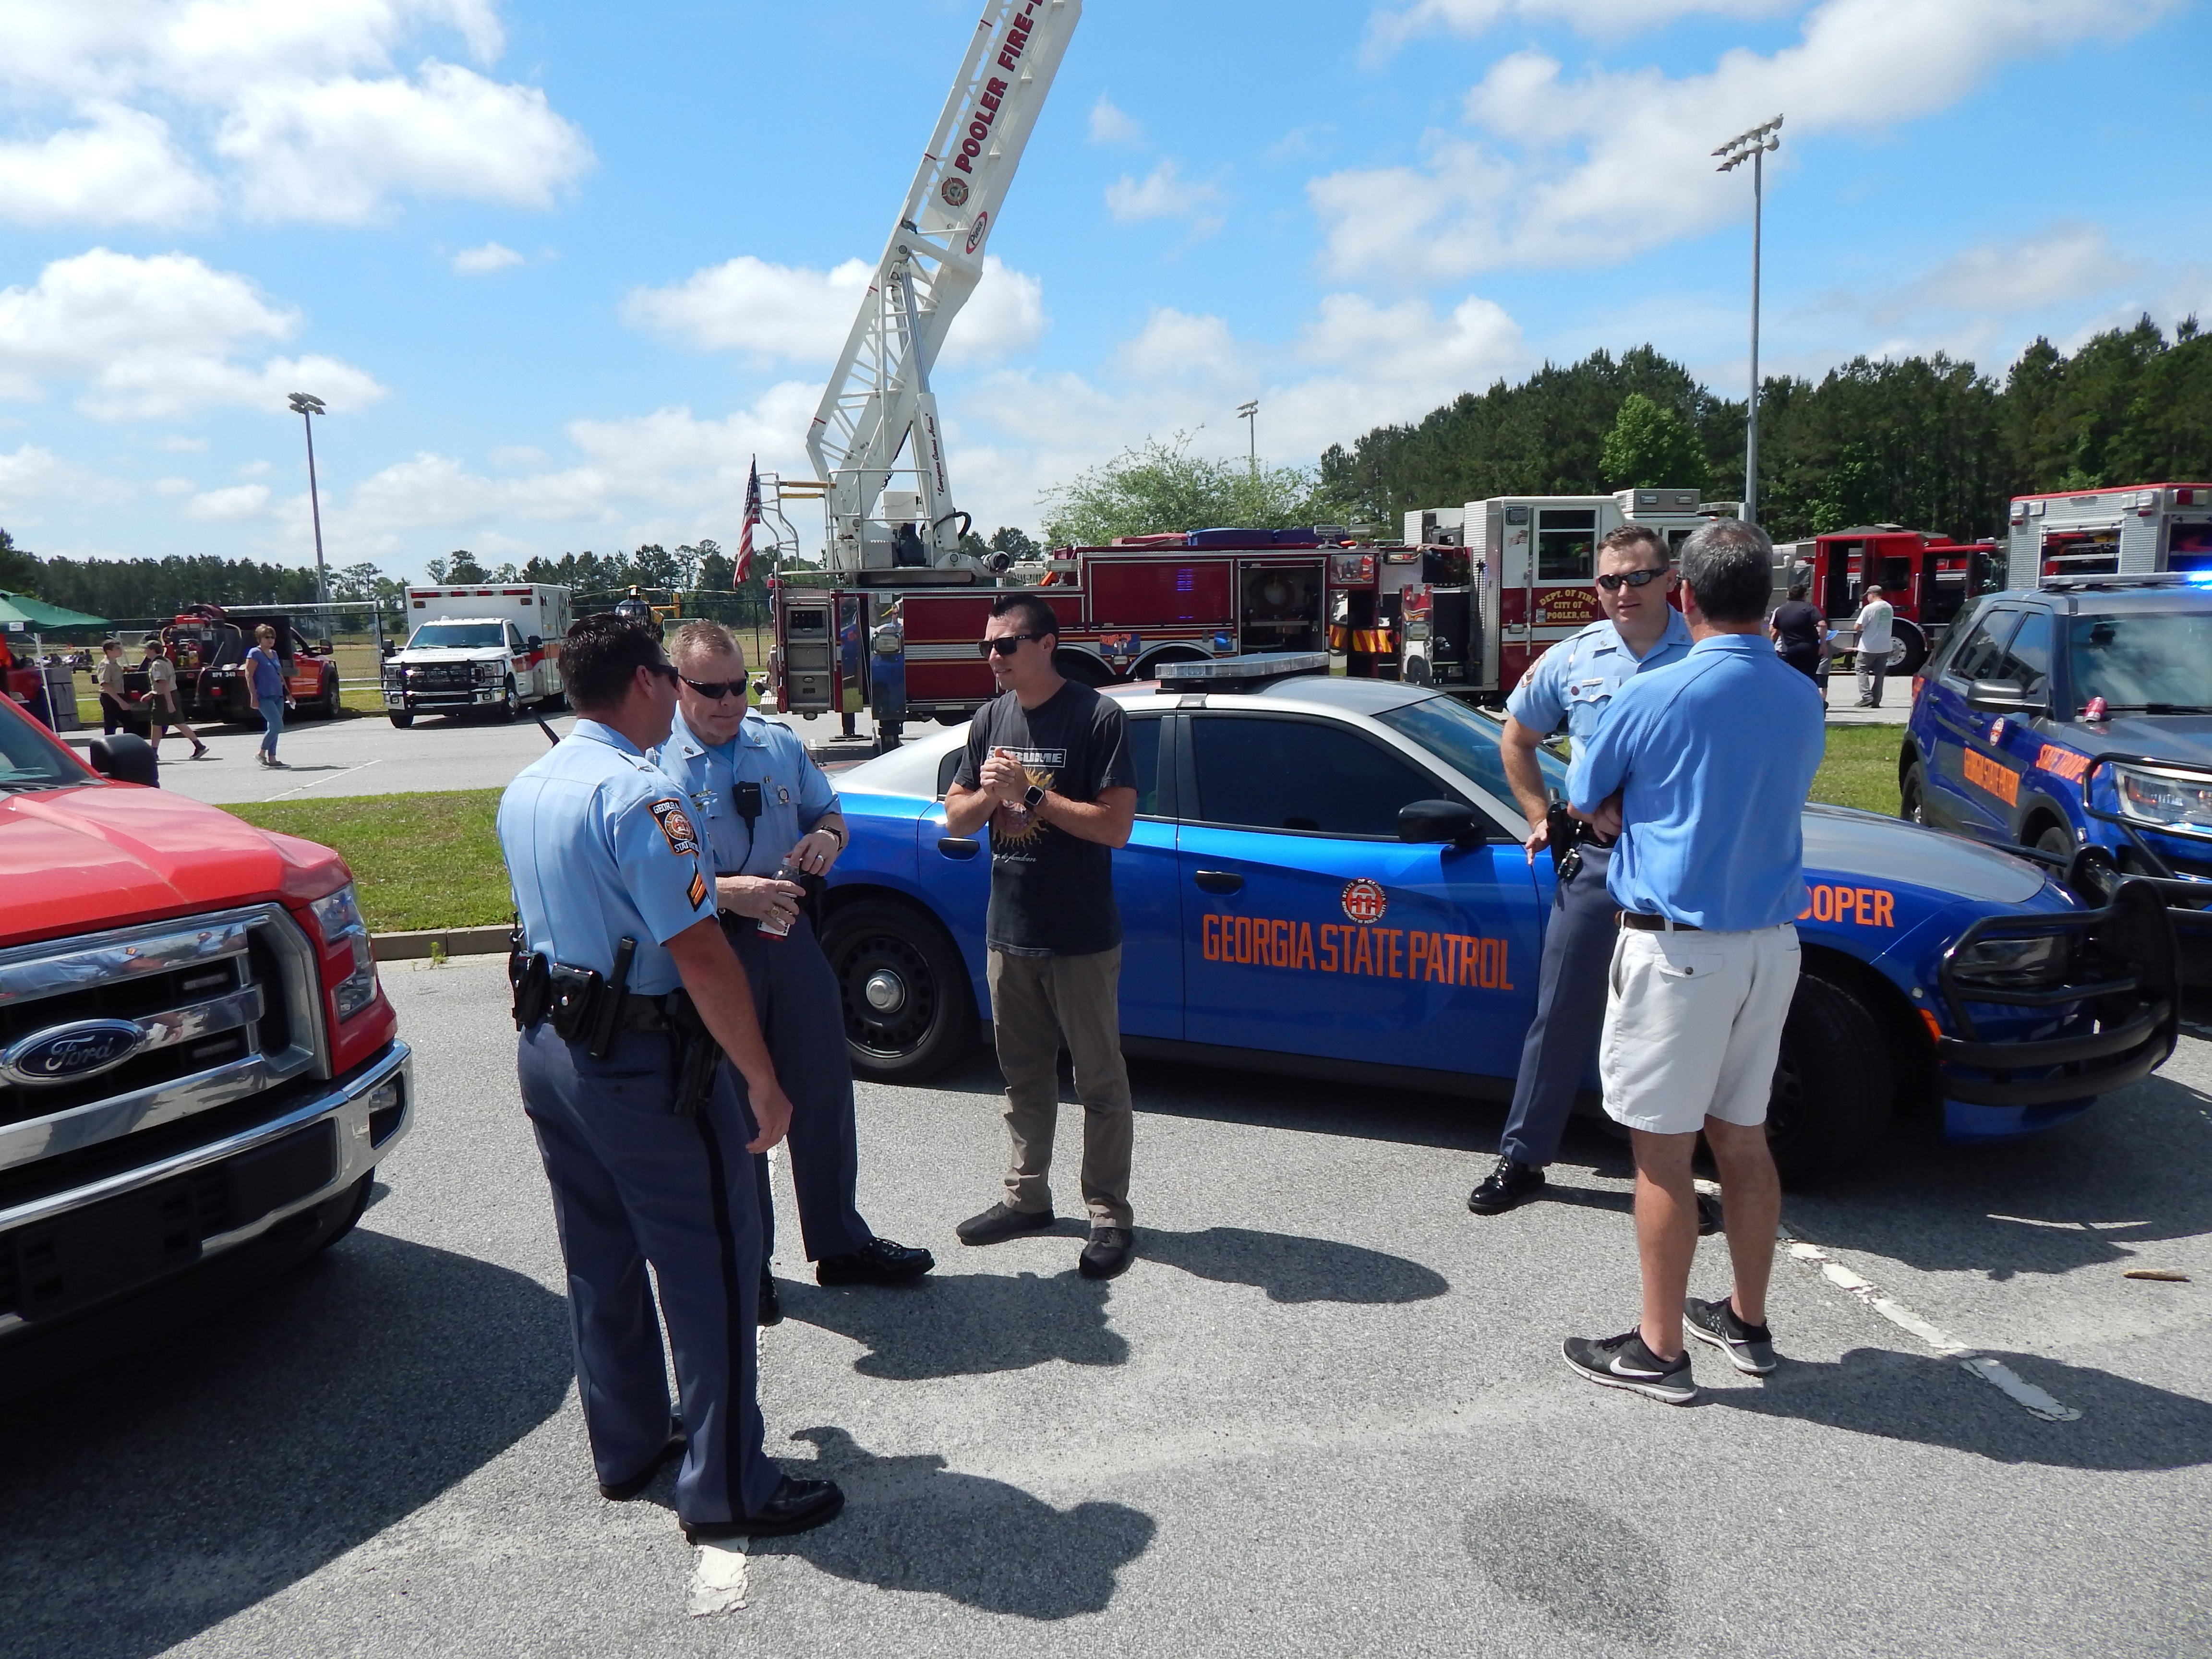 GALLERY: Public safety on display at annual park event